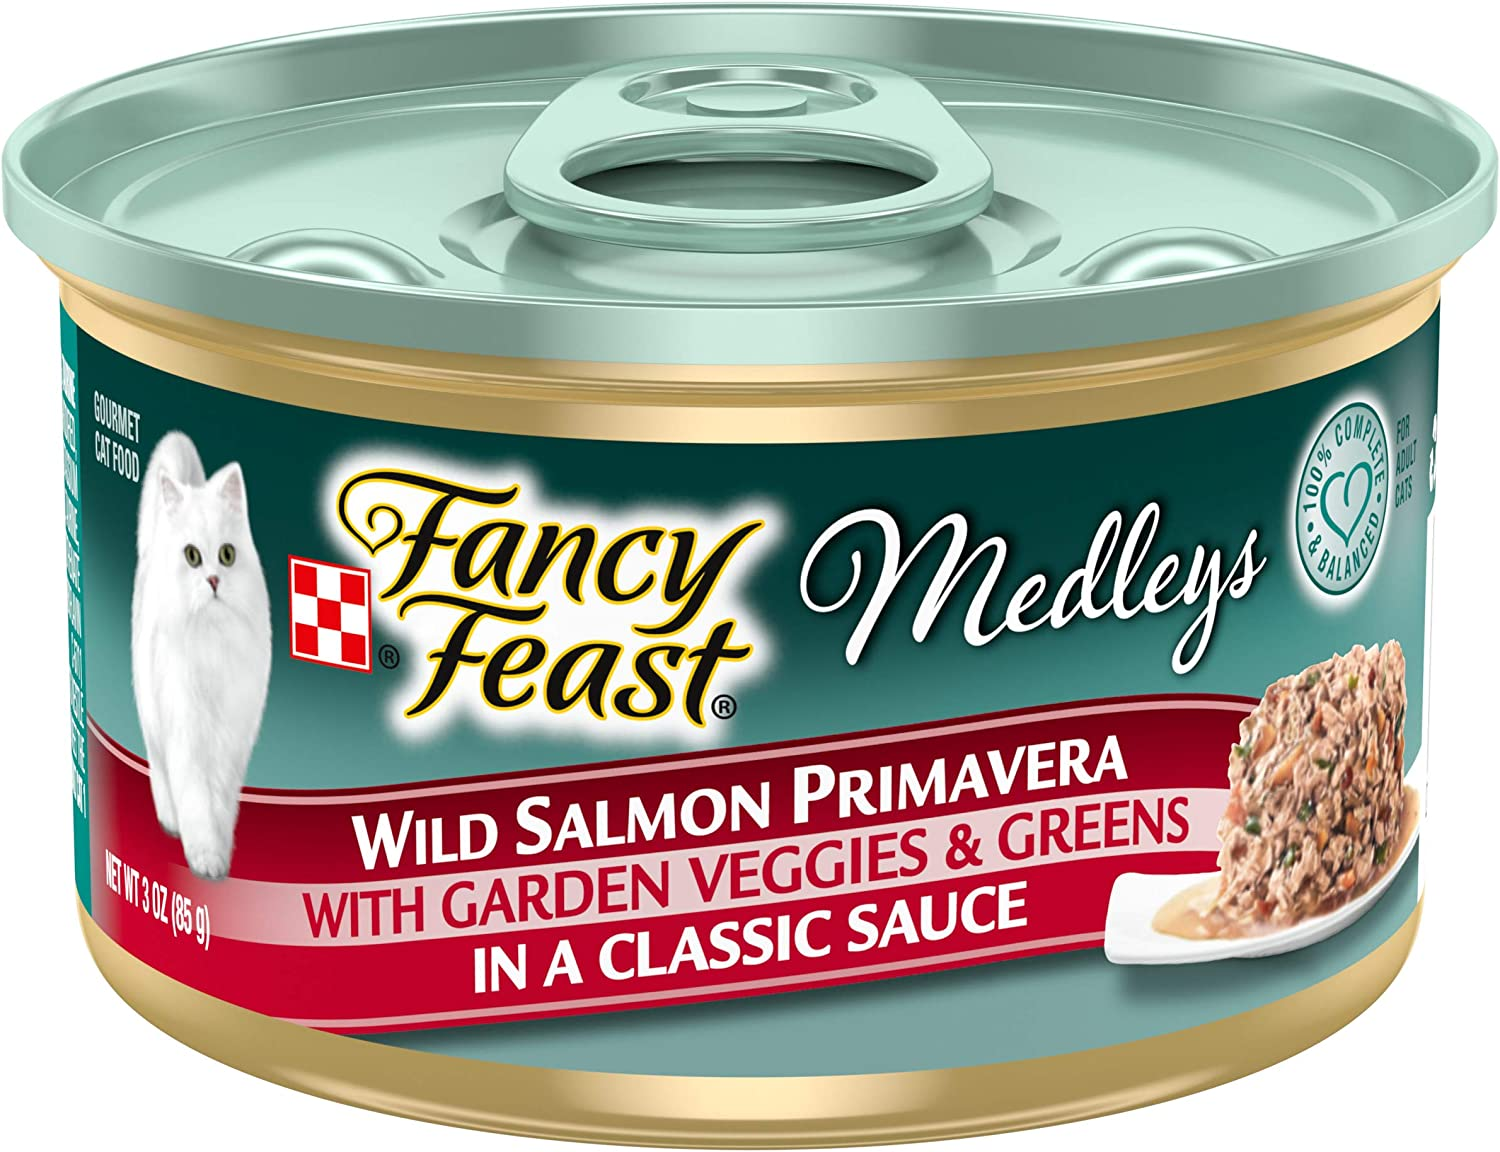 Purina Fancy Feast Wet Cat Food, Medleys Wild Salmon Primavera With Garden Veggies & Greens in Sauce - (24) 3 oz. Cans